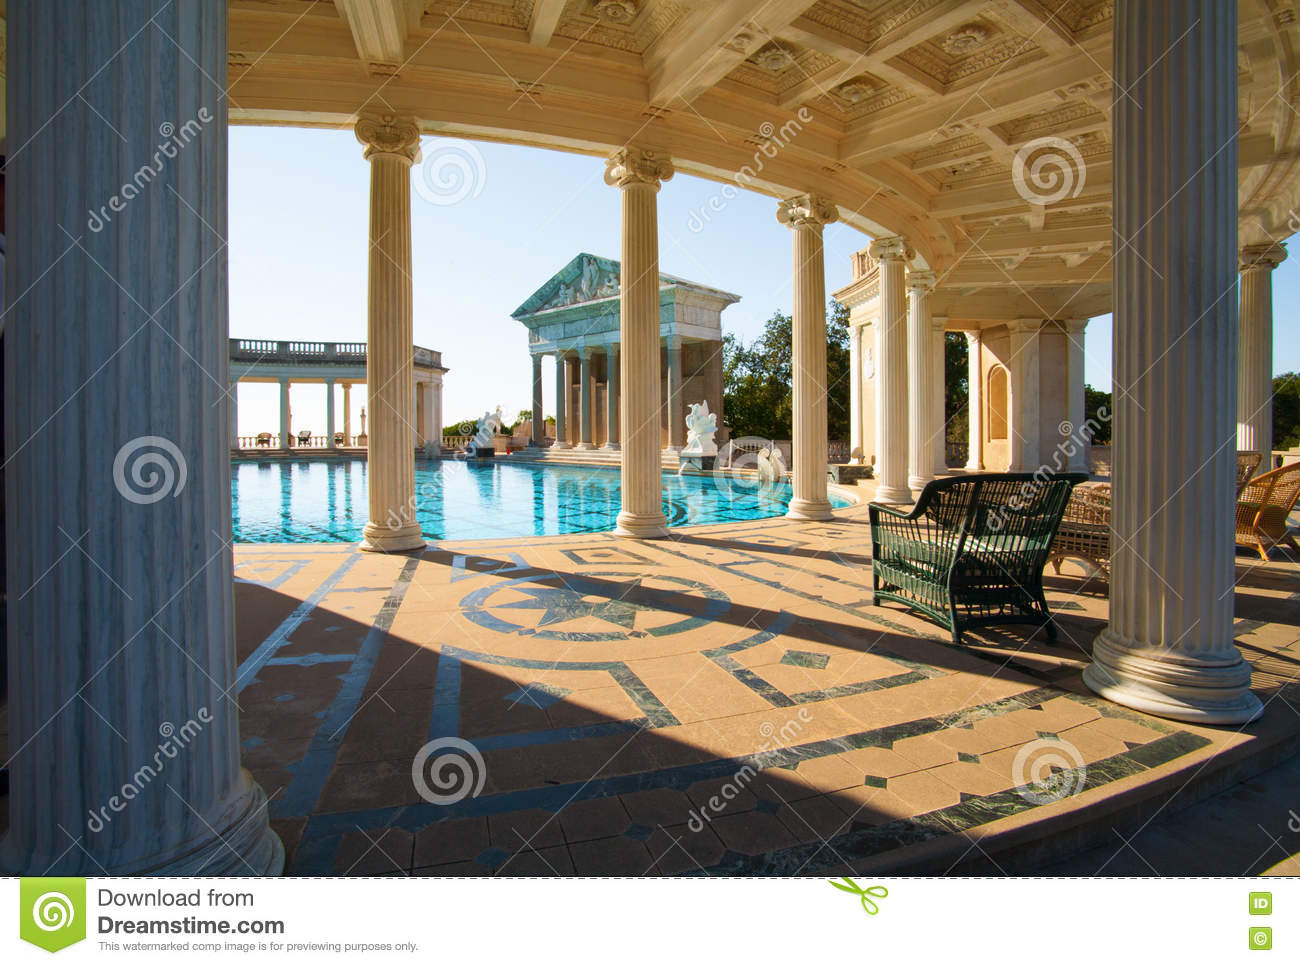 California Usa November 19 2008 Hearst Castle Editorial Stock Image Image 72889789